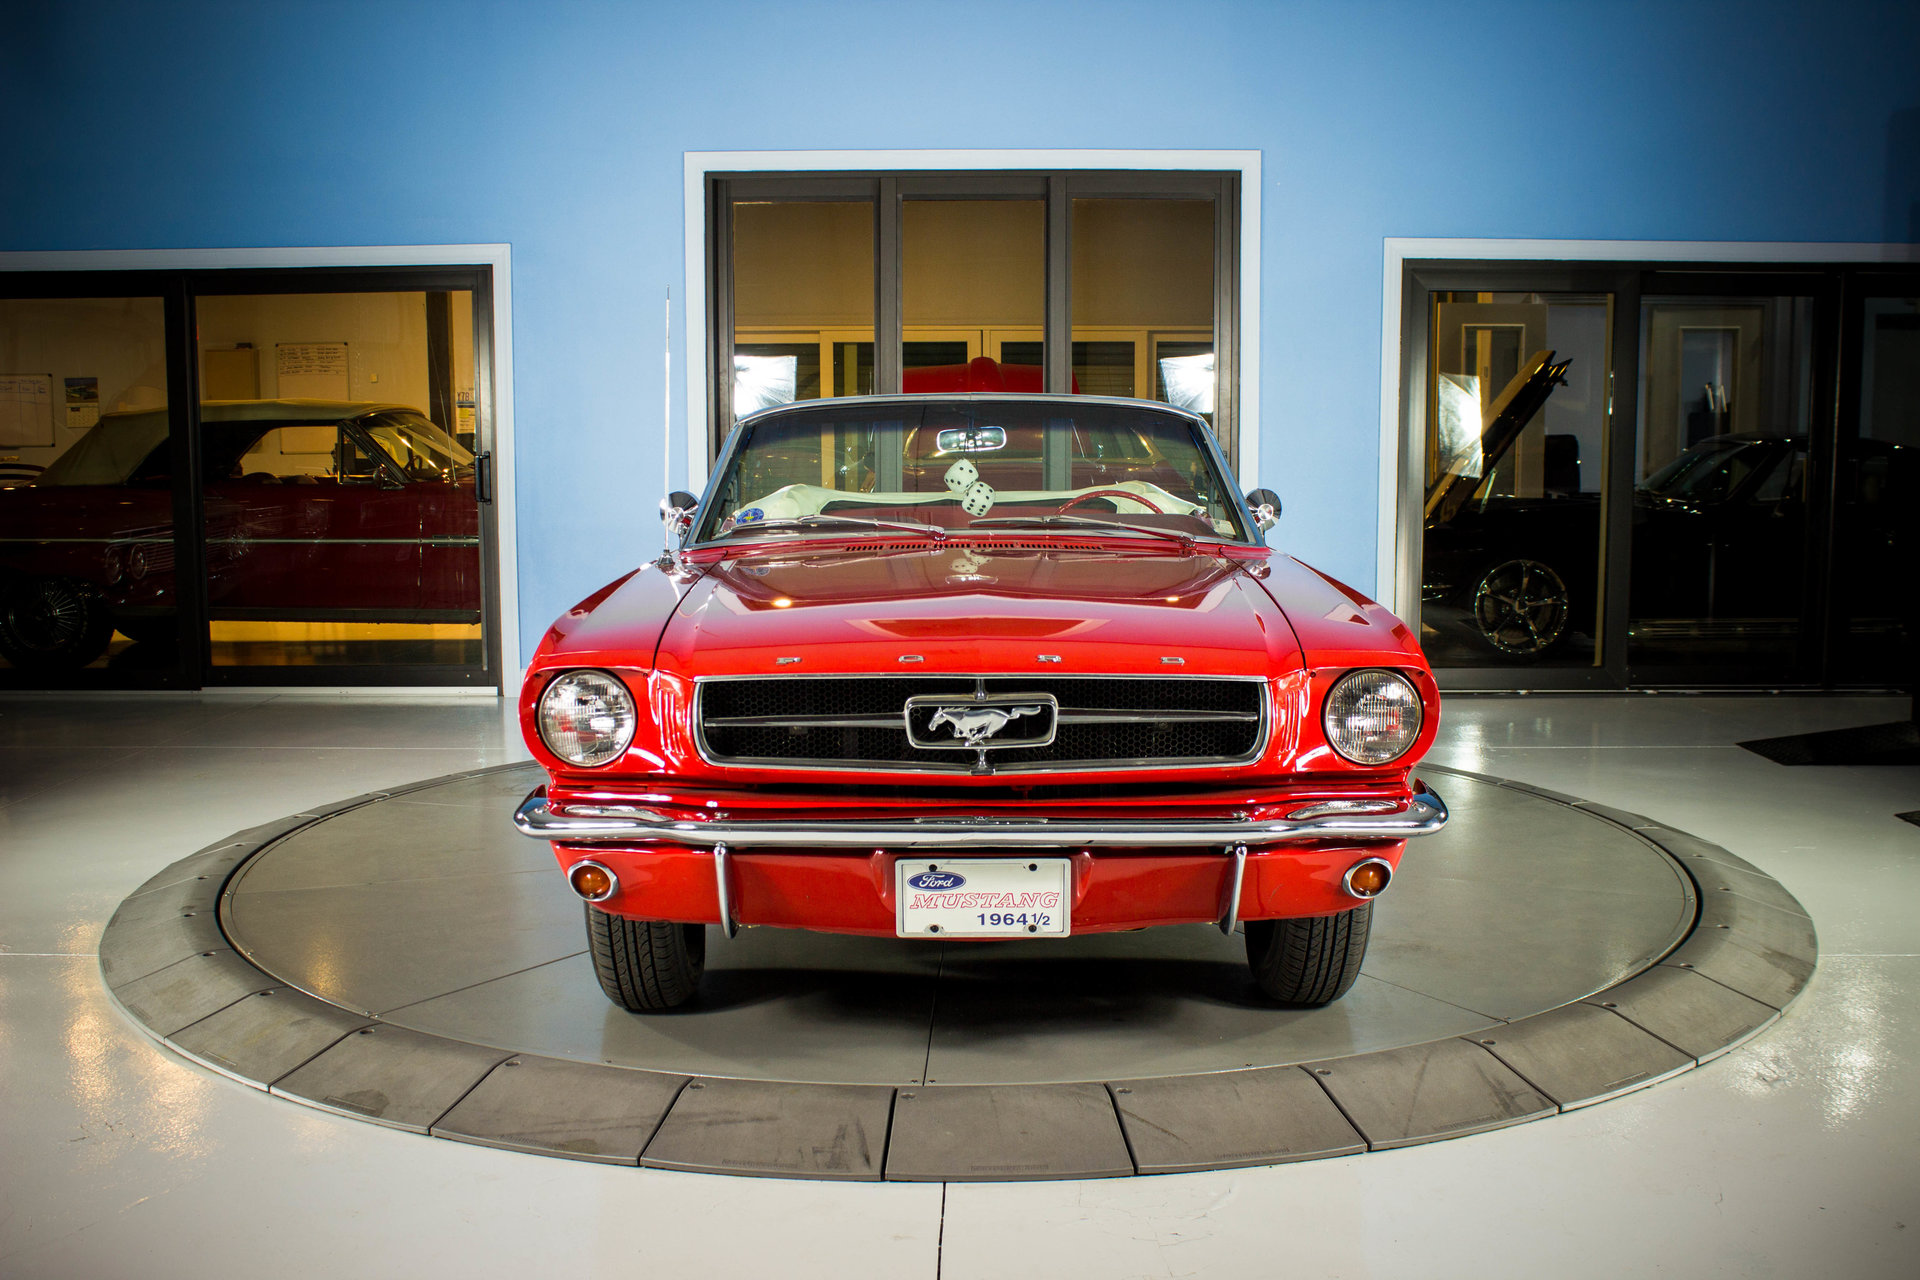 1965 Ford Mustang Berlin Motors 1964 Paint Colors For Sale